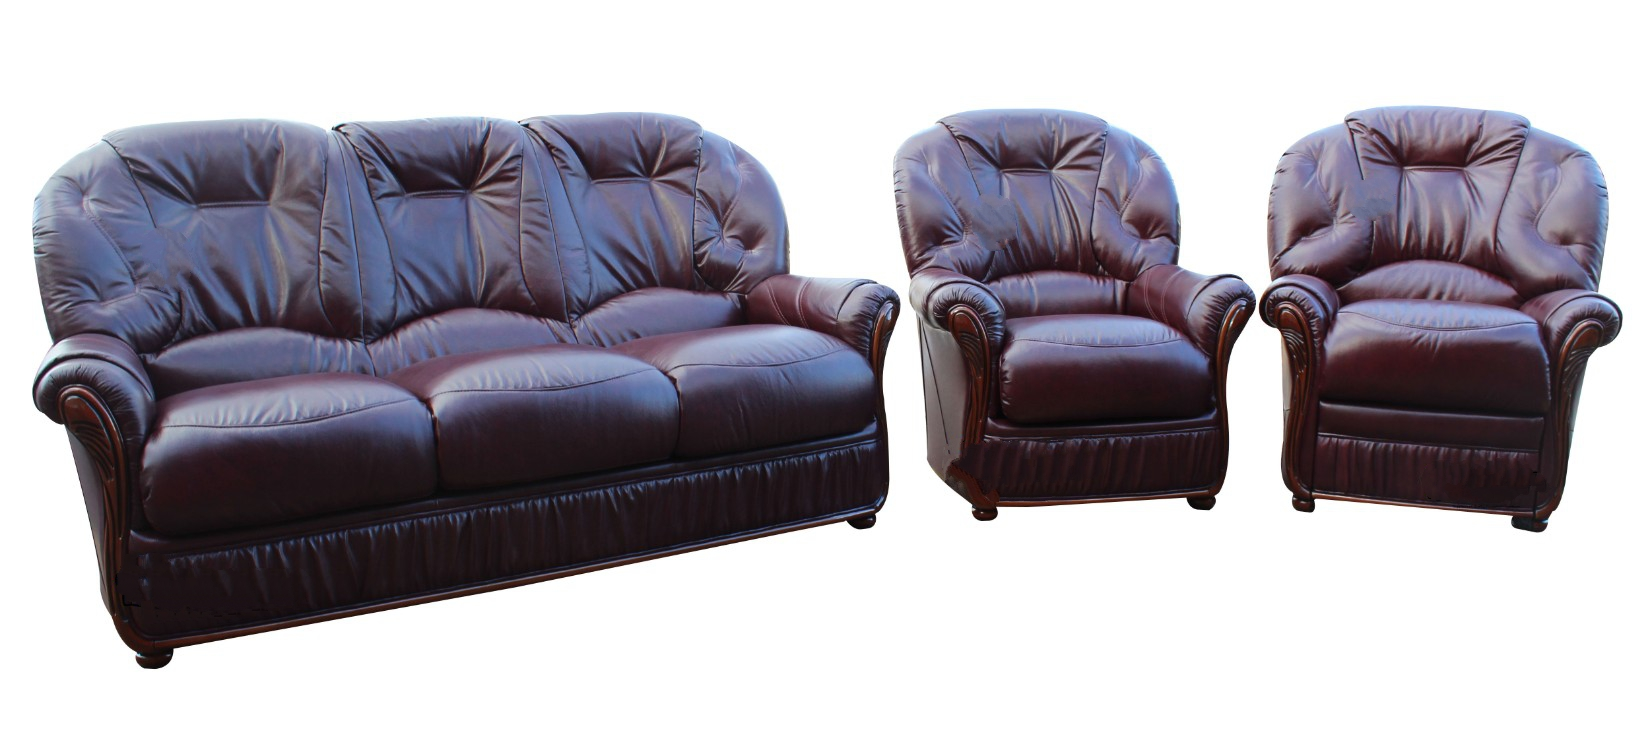 Dante 2 Piece Italian Leather Sofa Suite Nut